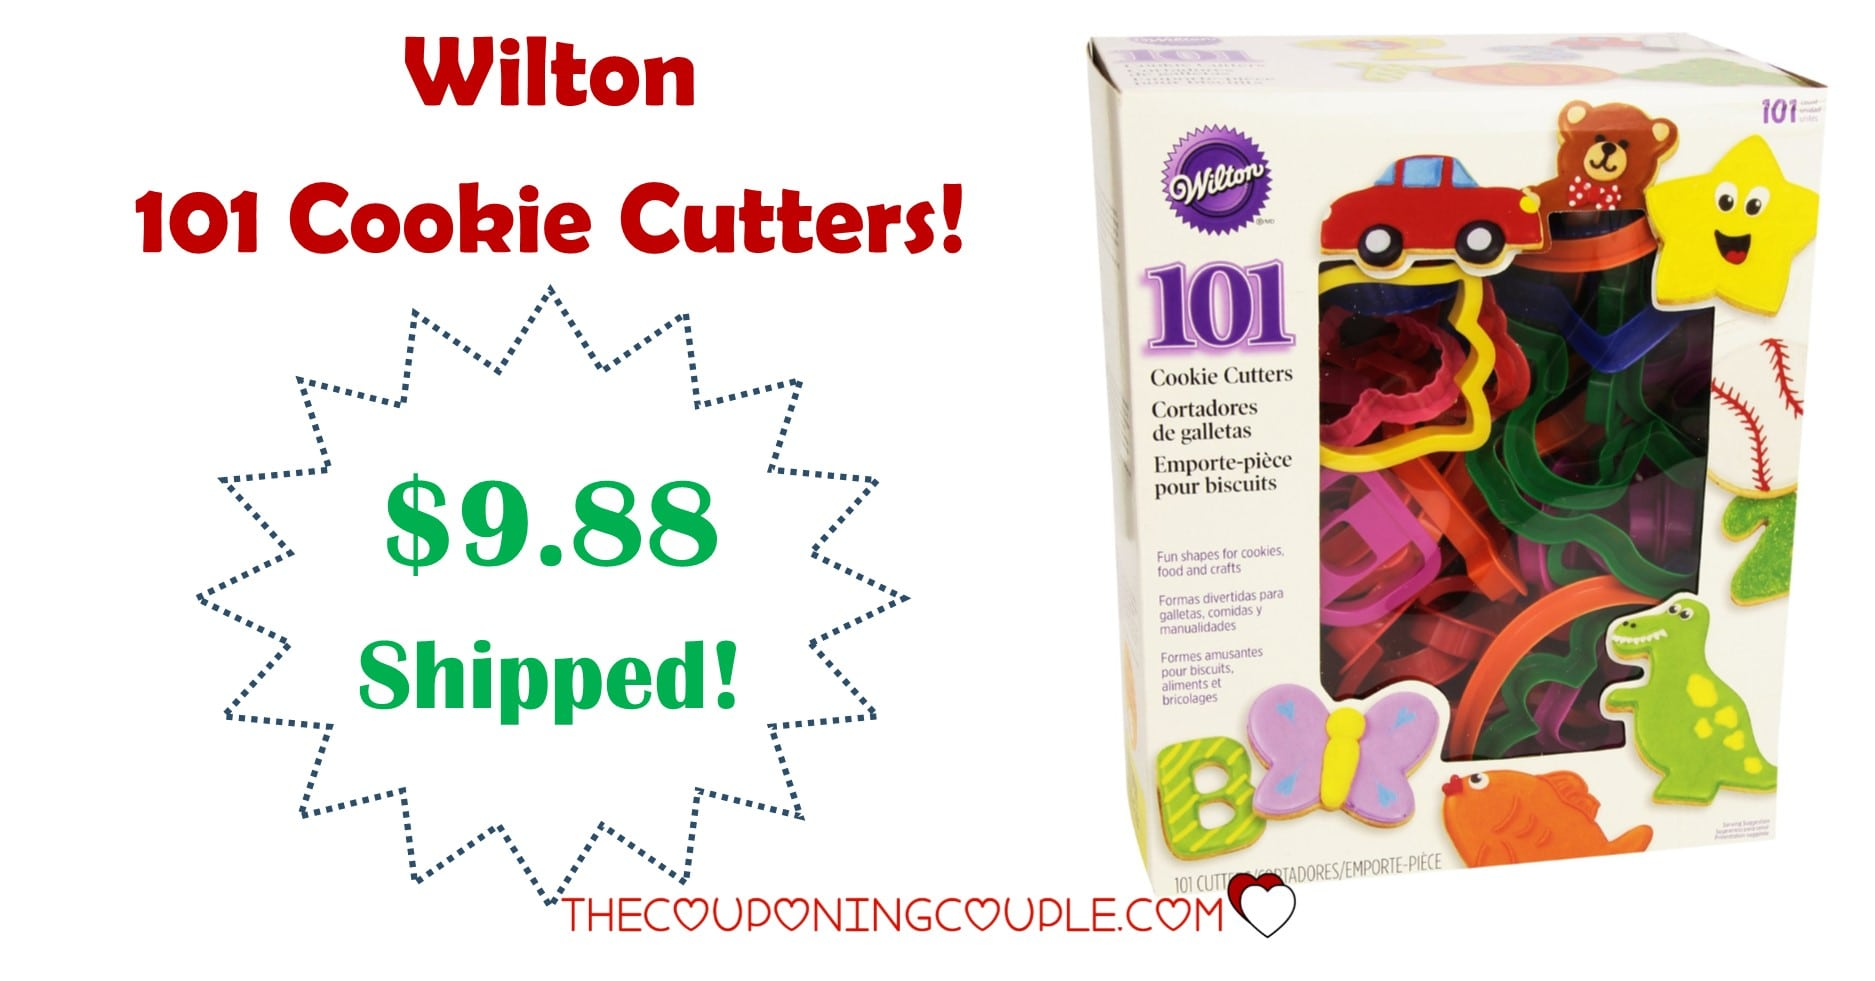 Wilton 101 Cookie Cutters